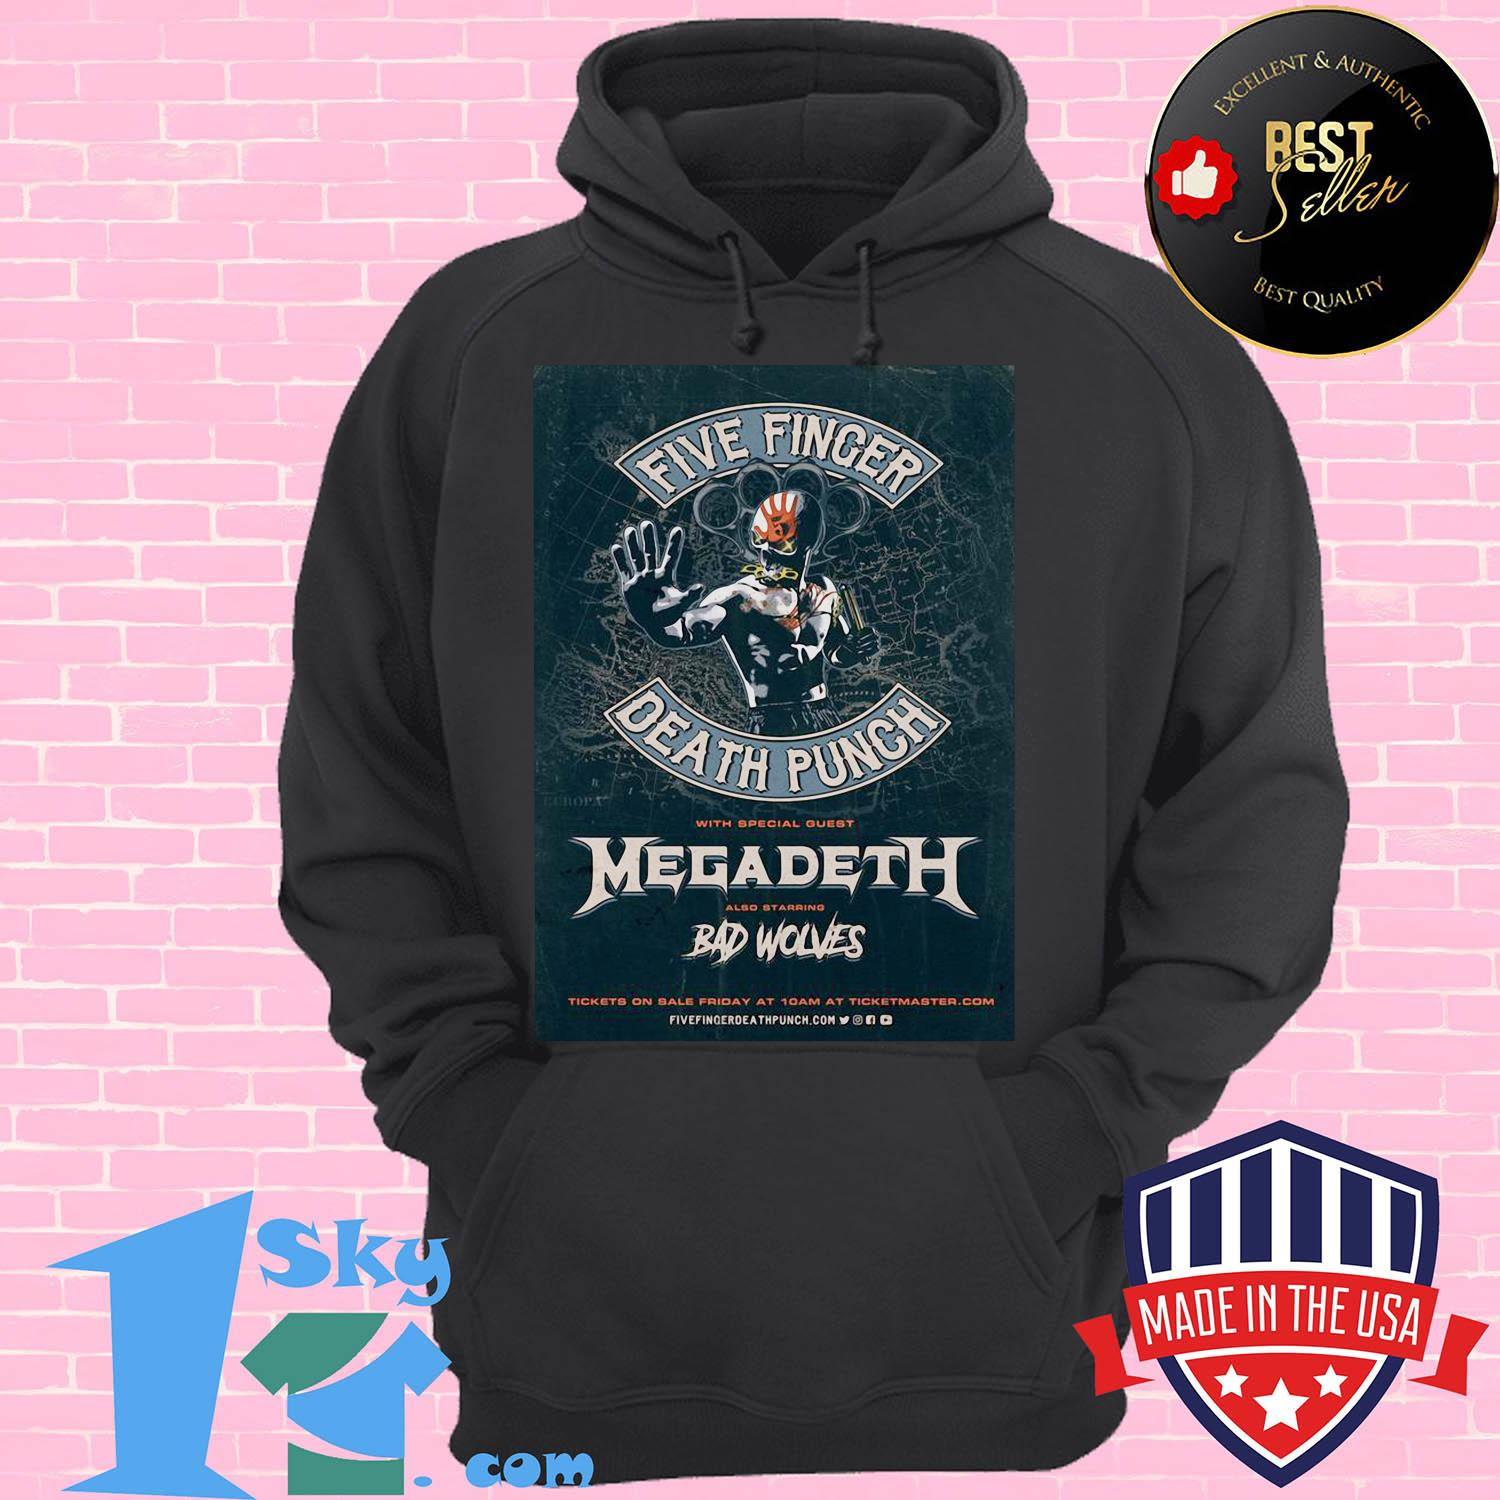 five finger death punch with special guest megadeth also starring bad wolves 2020 european hoodie - Five Finger Death Punch With Special Guest Megadeth Also Starring Bad Wolves 2020 European shirt